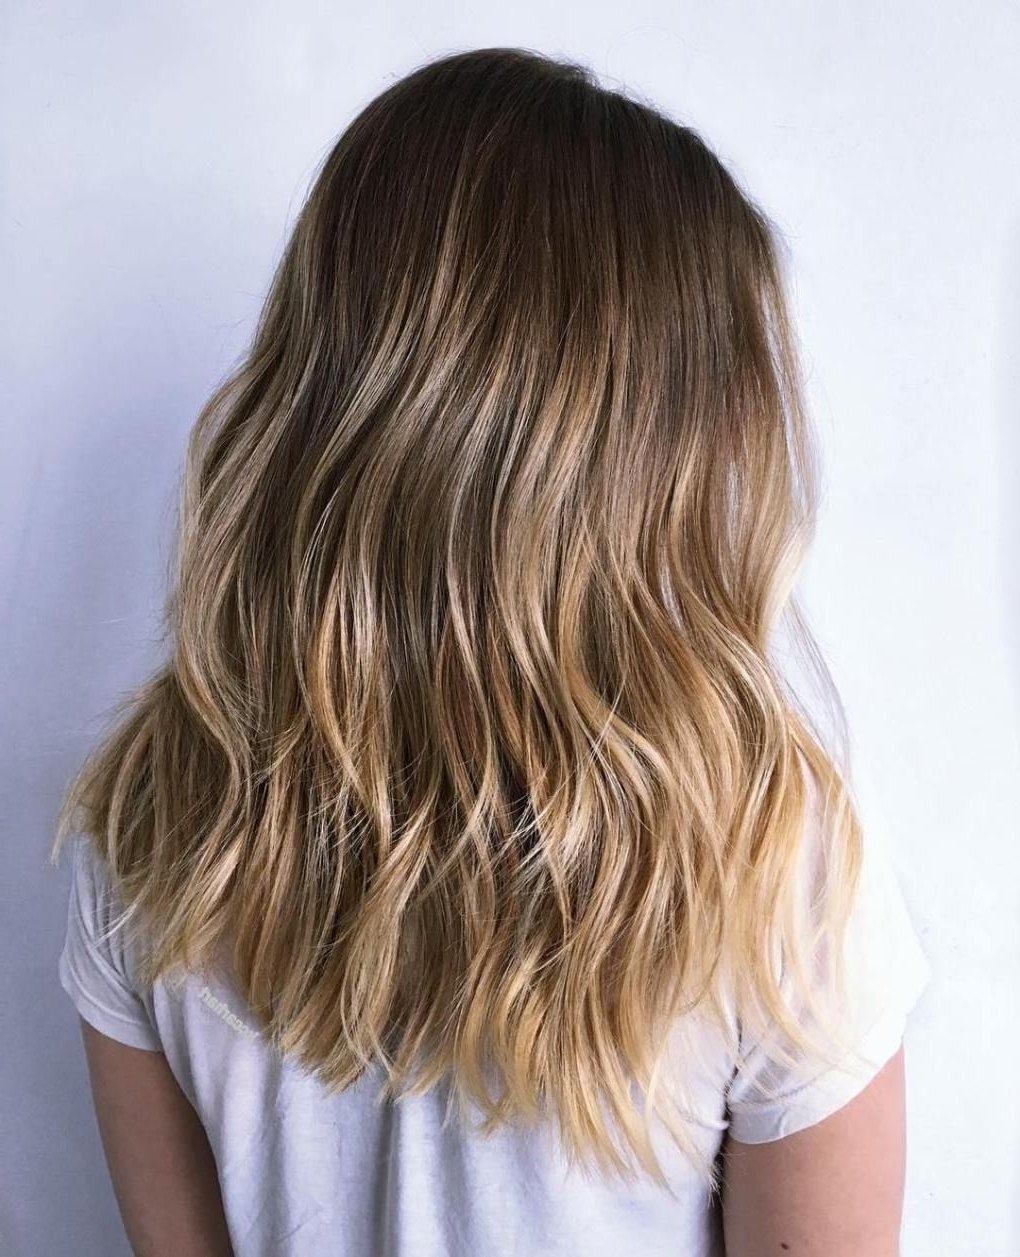 20 Dirty Blonde Hair Ideas That Work On Everyone (View 16 of 20)